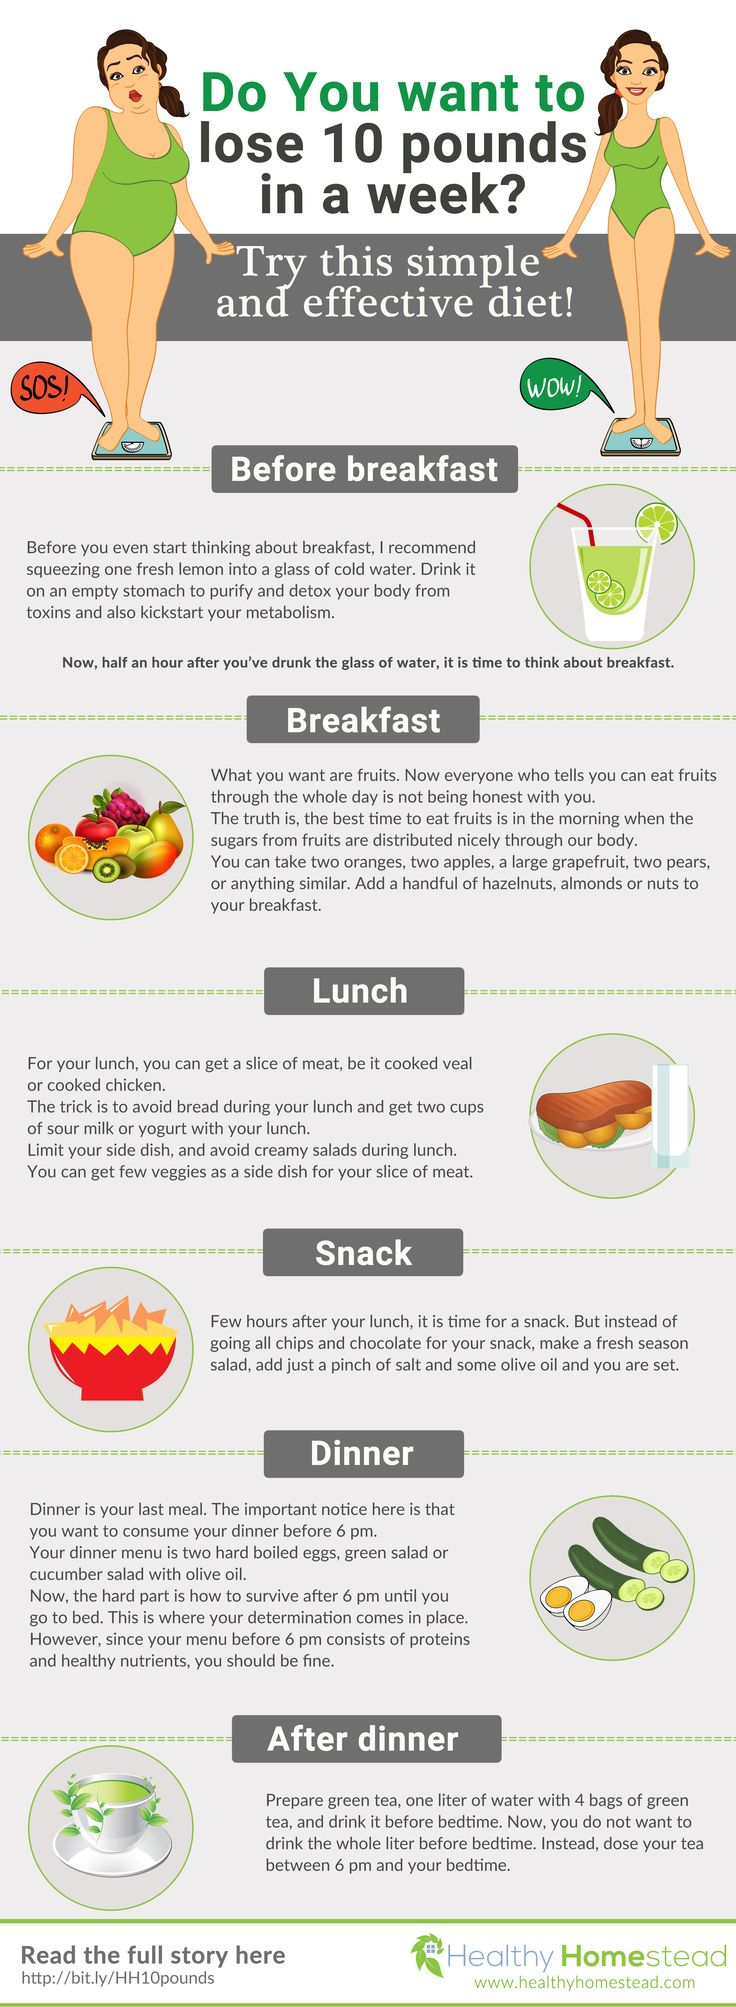 How to Lose 1 Pound Per Day (3 Best Fat Loss Diets That Work!)